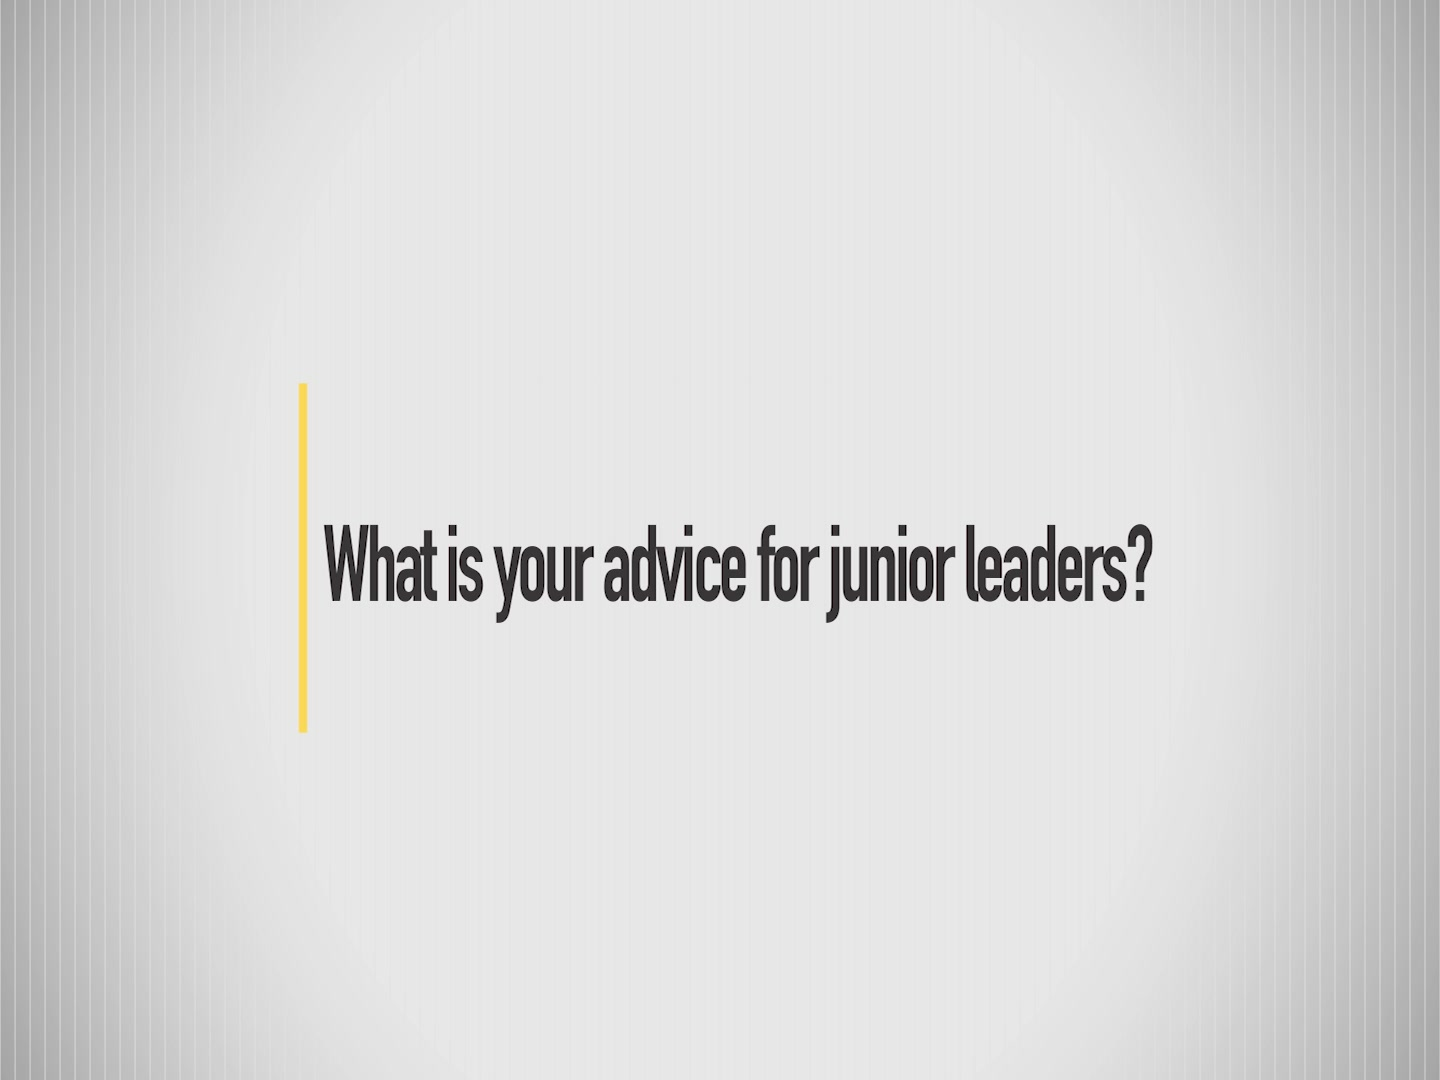 What is your advice for junior leaders?